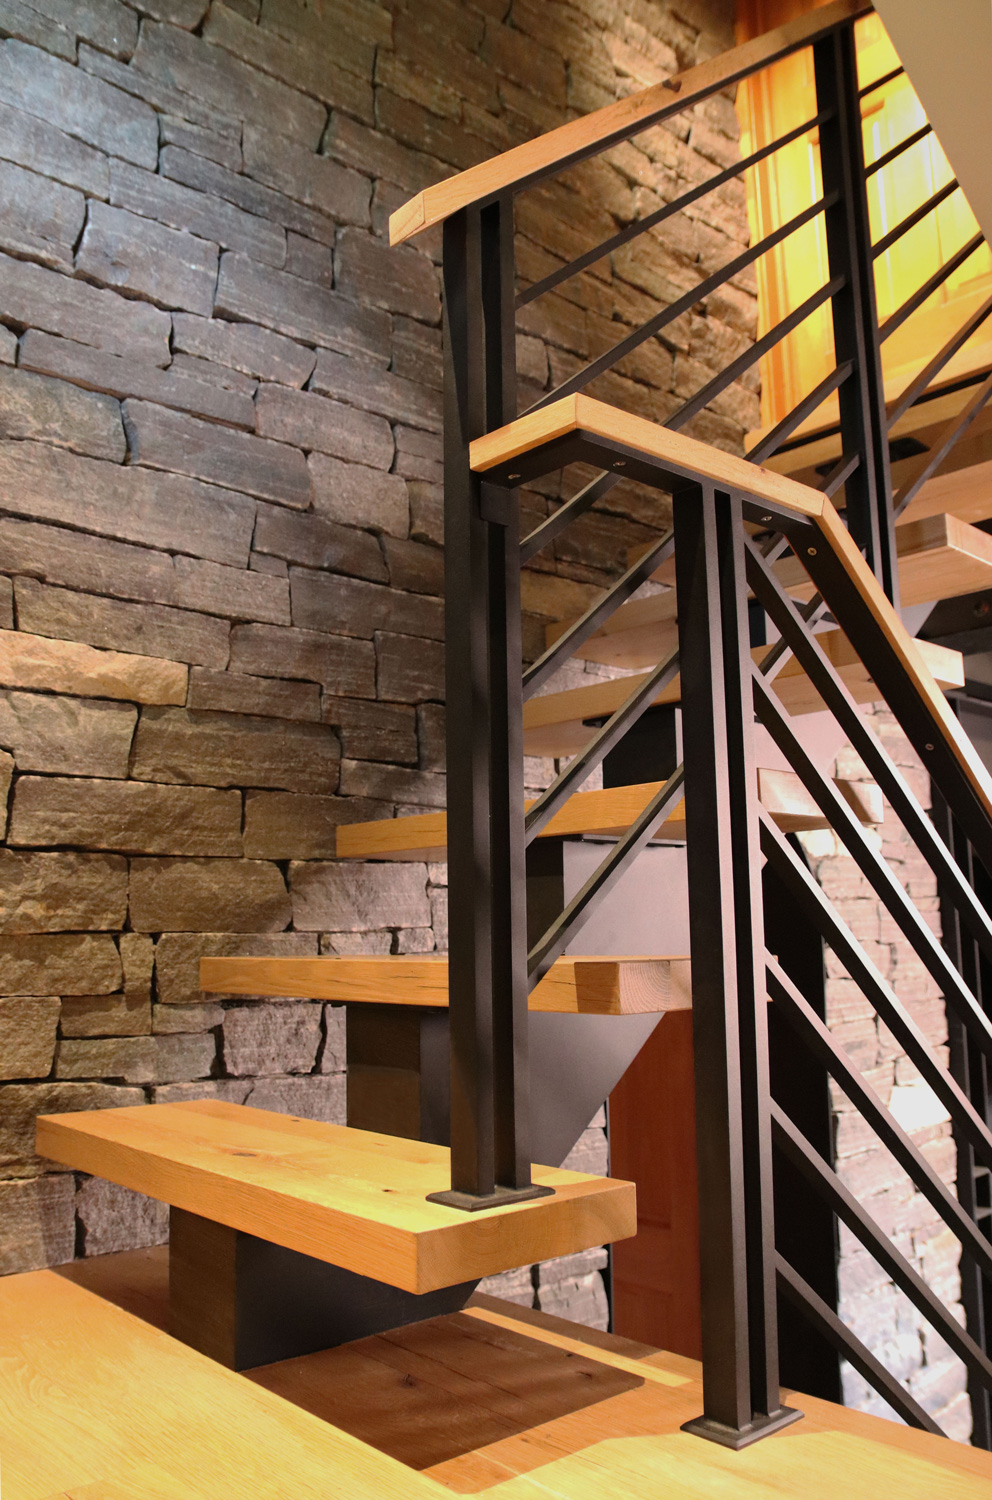 Floating staircase with modern flat bar railing.